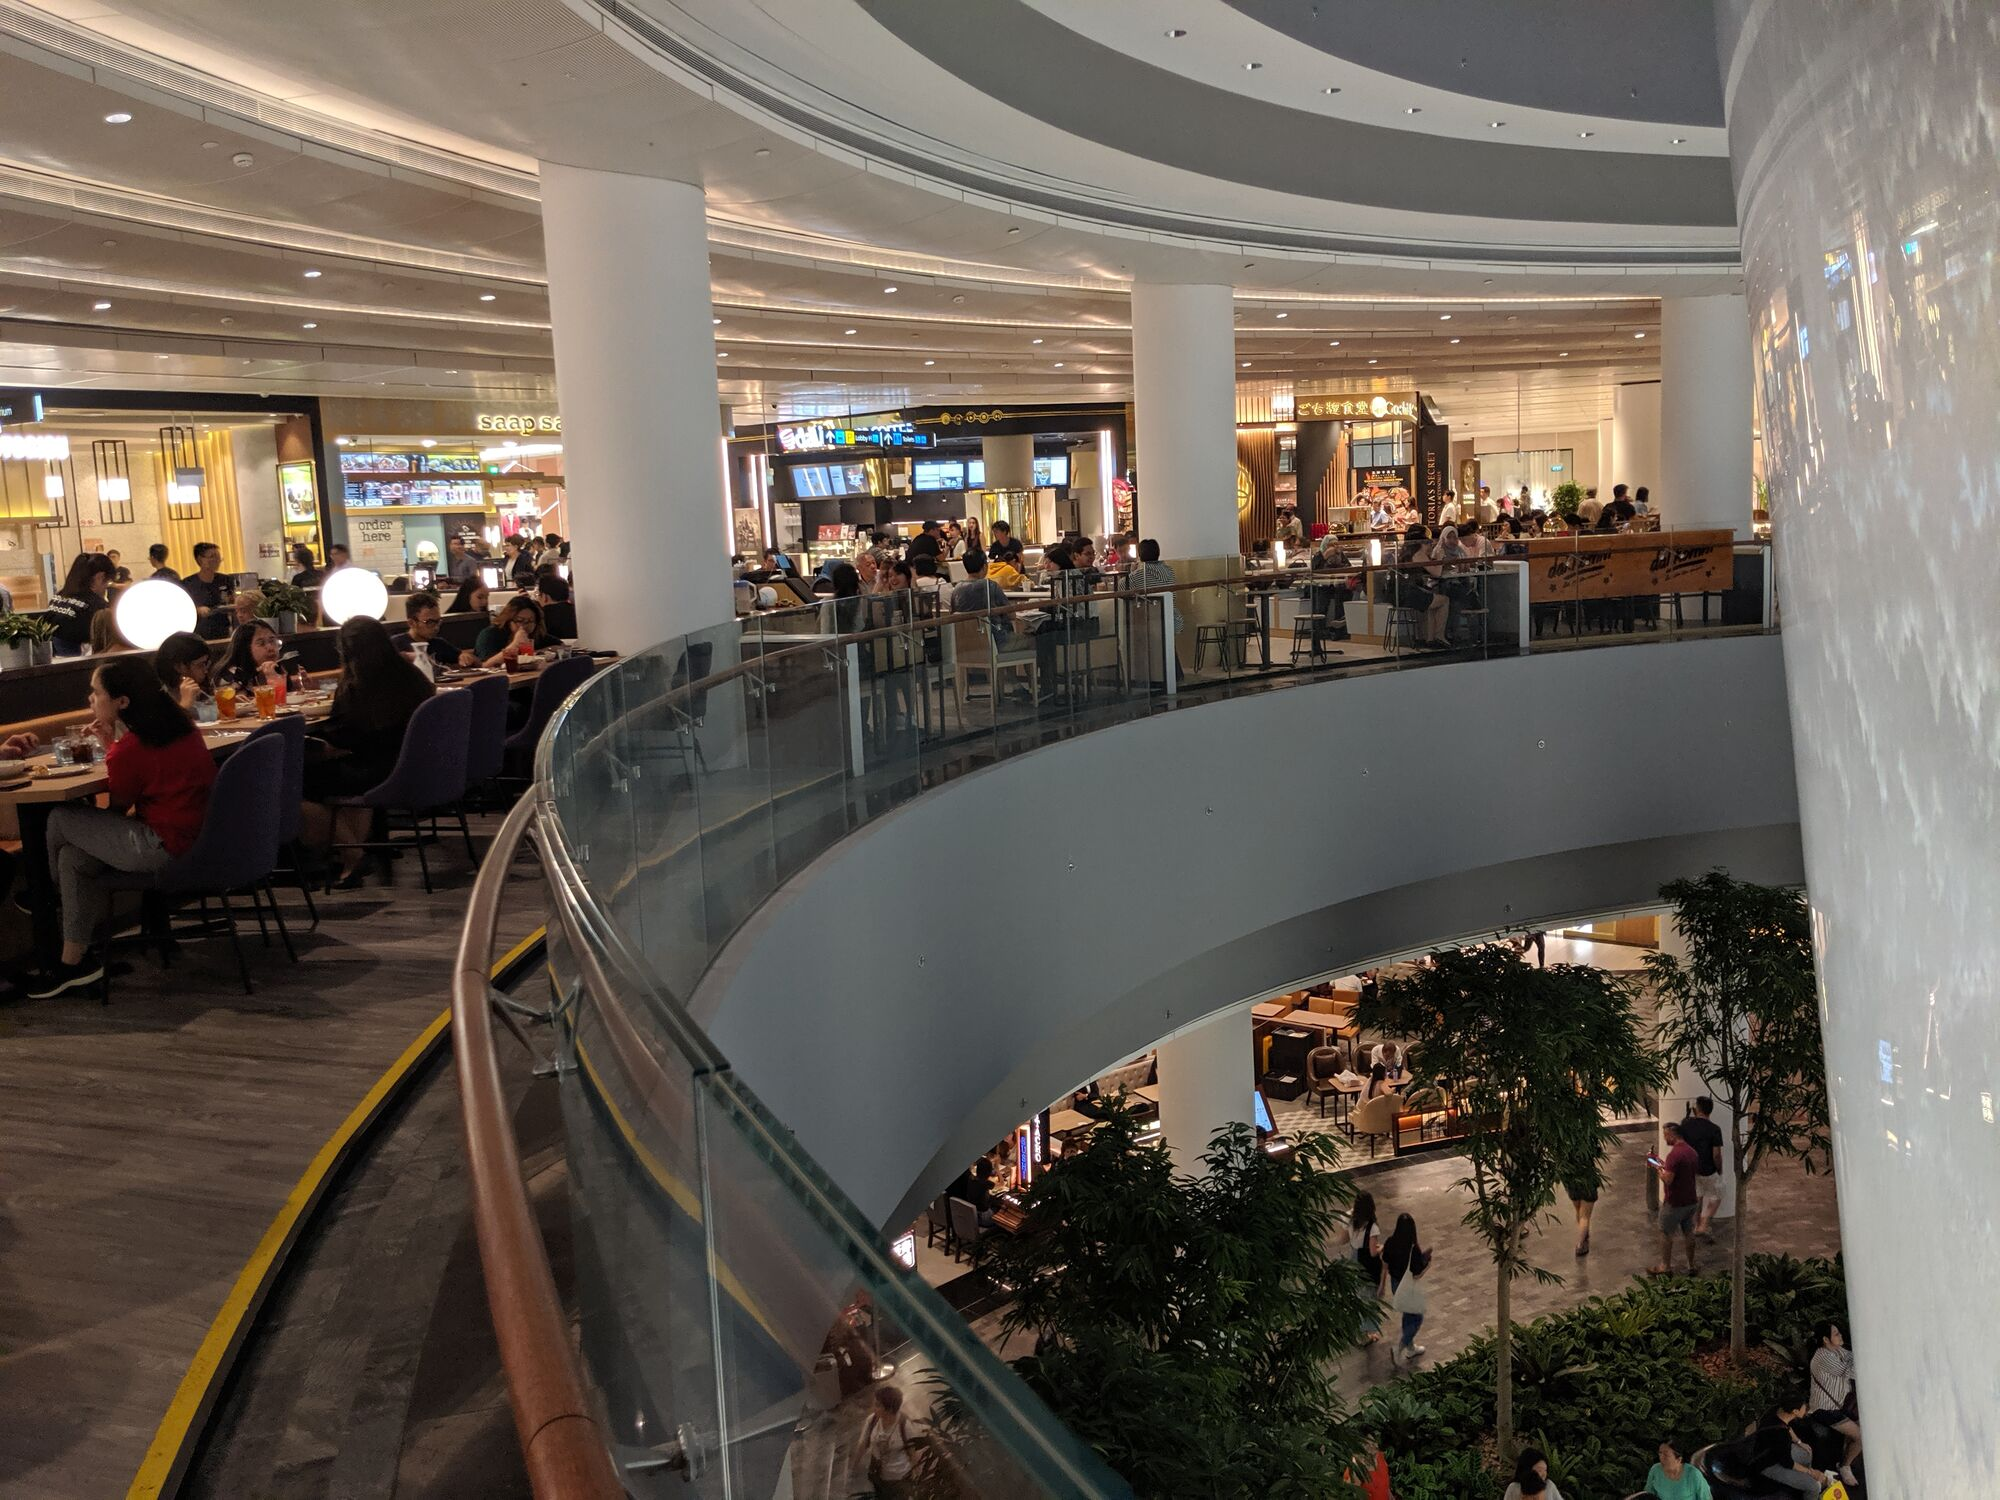 There are eateries in the level below the ground